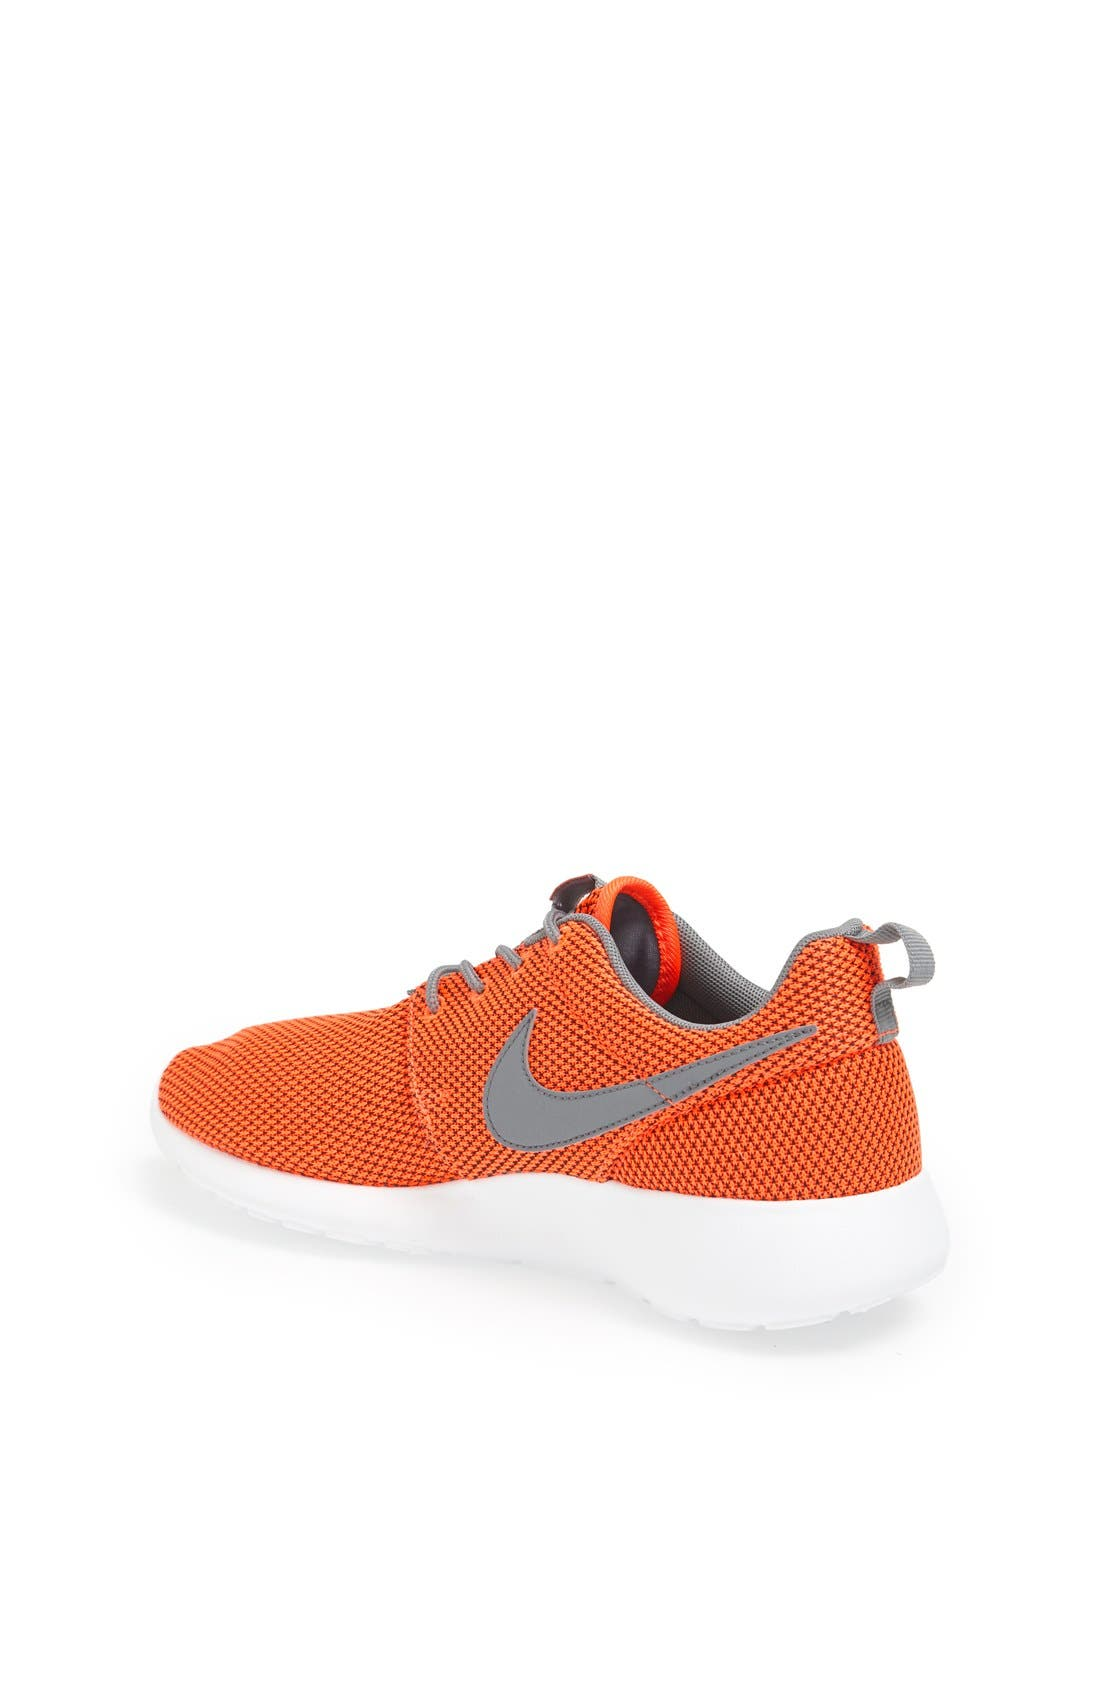 'Roshe Run' Sneaker,                             Alternate thumbnail 102, color,